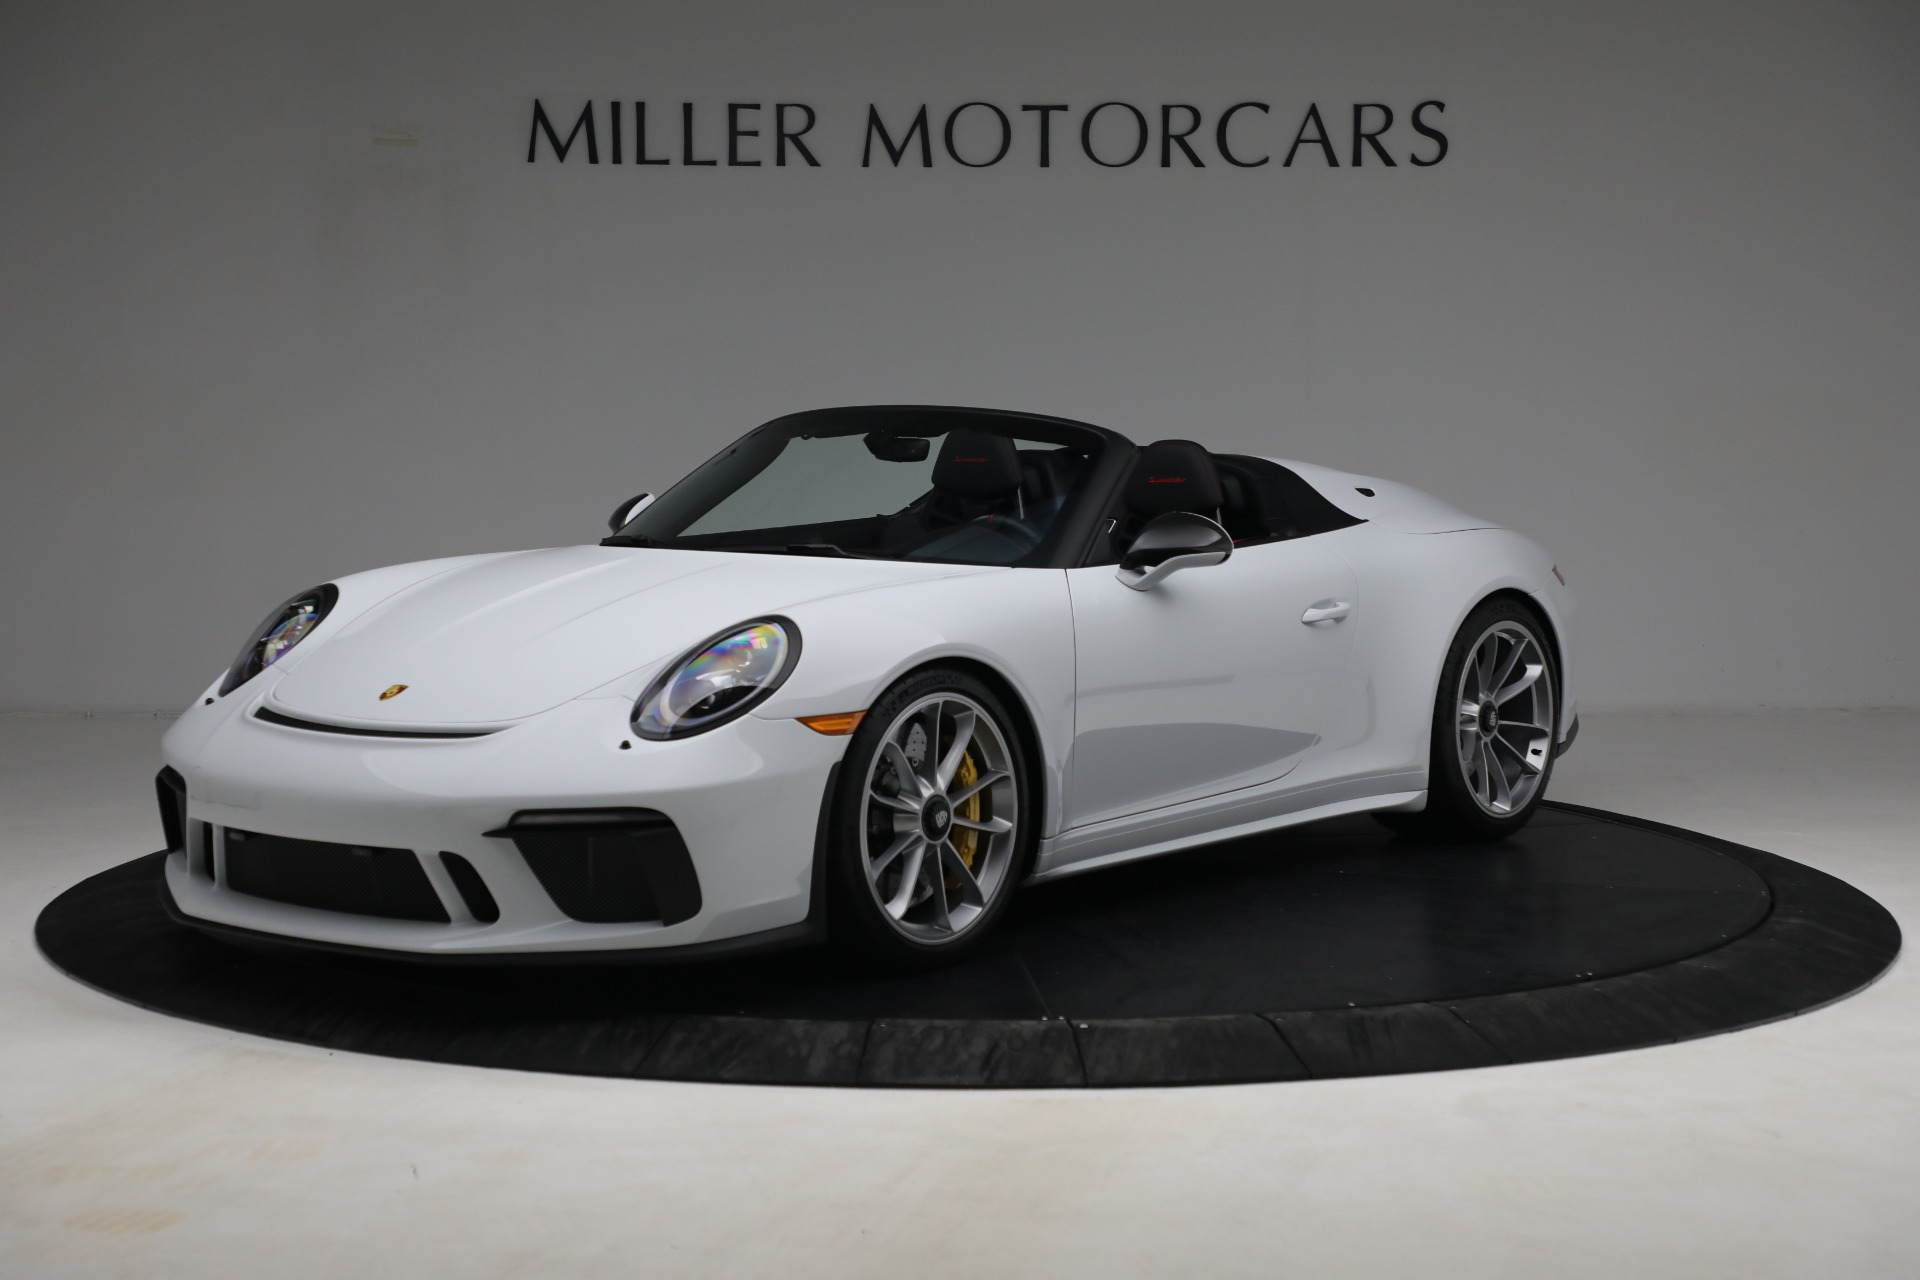 Used 2019 Porsche 911 Speedster for sale $395,900 at Alfa Romeo of Greenwich in Greenwich CT 06830 1